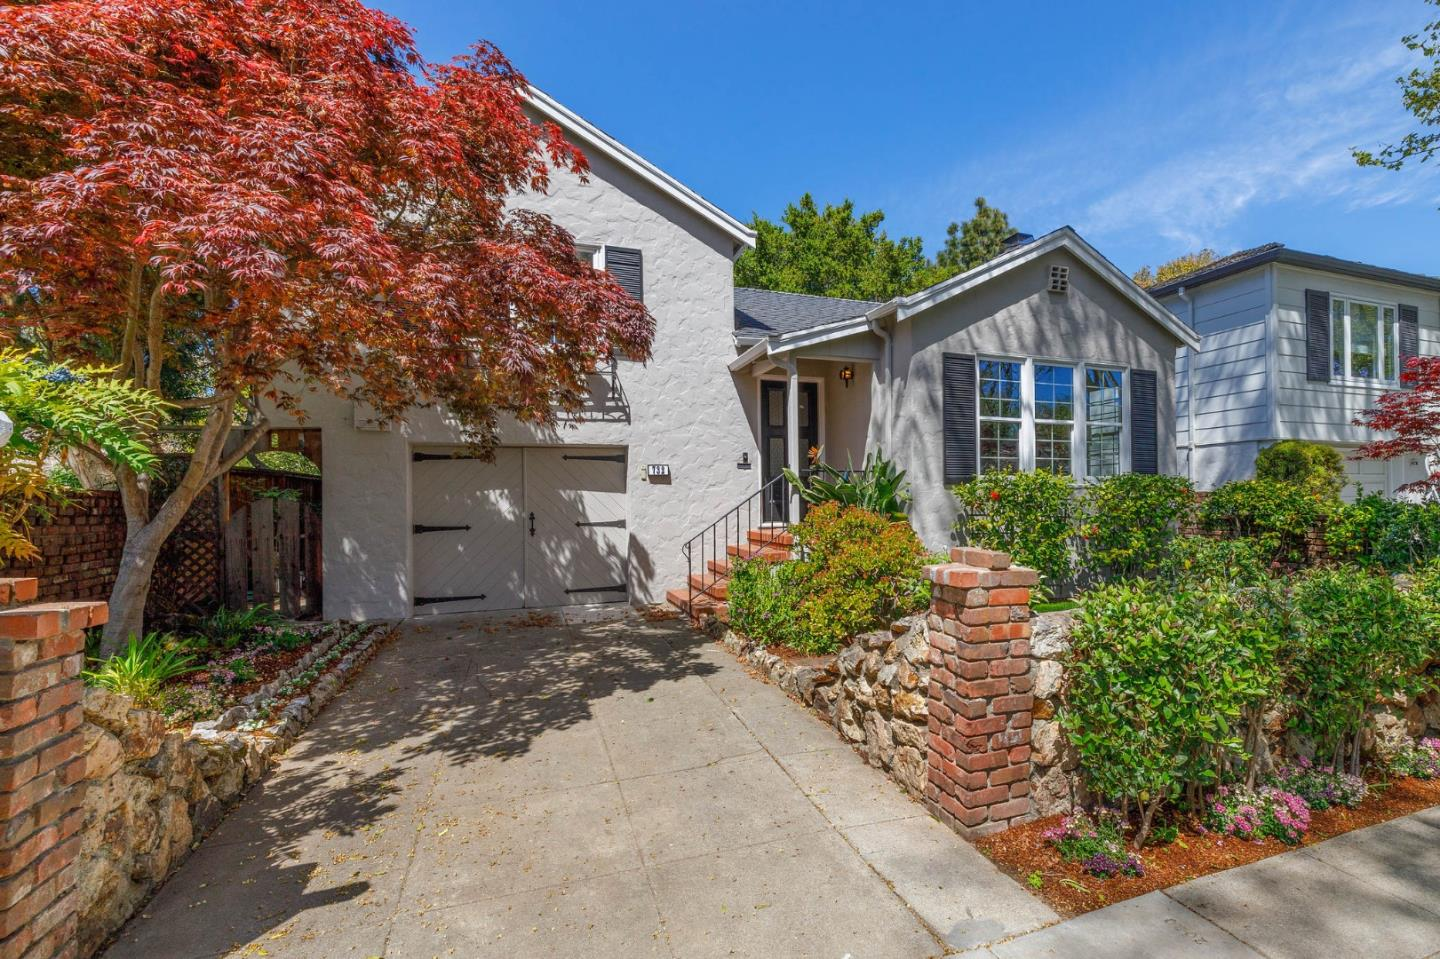 Located at the end of a culdesac next to Washington Park, this picturesque home is located in the desirable neighborhood known as Burlingables. Its 1,920+/- sq. ft. floor plan offers 3 BDS, 2 BA plus a bonus room for home office or workshop, making it ideal for first time homebuyers, expanding families, or down-sizers. The interiors are light and bright, have hardwood floors, are freshly painted, with updated baths and new kitchen appliances making it move in ready. There is a living room with a fireplace, a formal dining room and separate family room with large skylight and back yard access. The location is ideal - you are next to Washington Park and the soon-to-be new Burlingame Rec Center. If you want to go downtown, Burlingame Avenue is a short 0.4 miles away. Here you'll find upscale shopping, a multitude of restaurants, wine bars, coffee, sandwich shops and much more. This property wont stay on the market long, so call today to schedule a private showing!